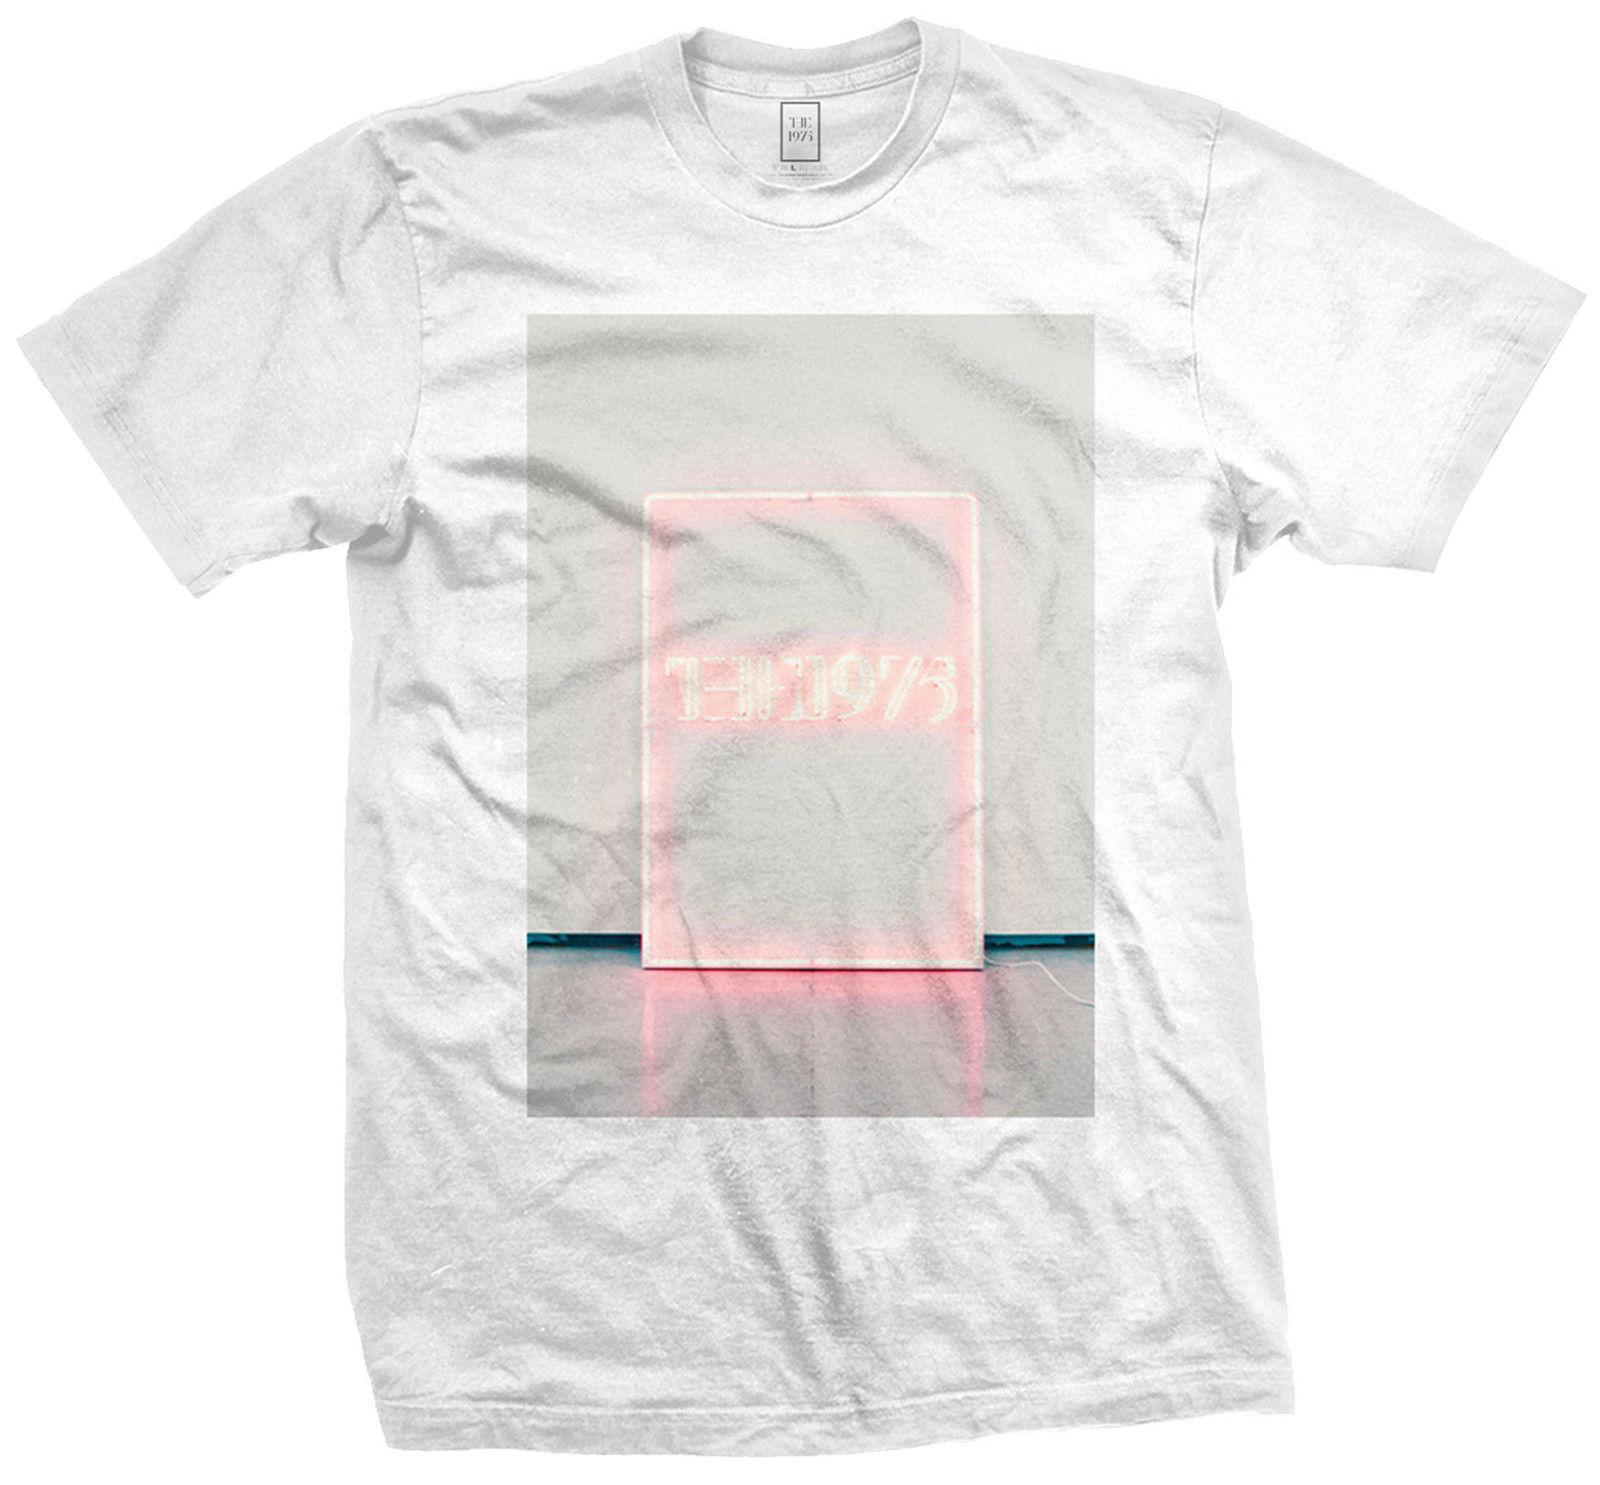 388168135 The 1975 Neon Sign T Shirt White Official Mens Unisex Rock Music Band Merch  Tee High Quality Custom Printed Short Sleeve Tops Tee The Following T Shirts  ...